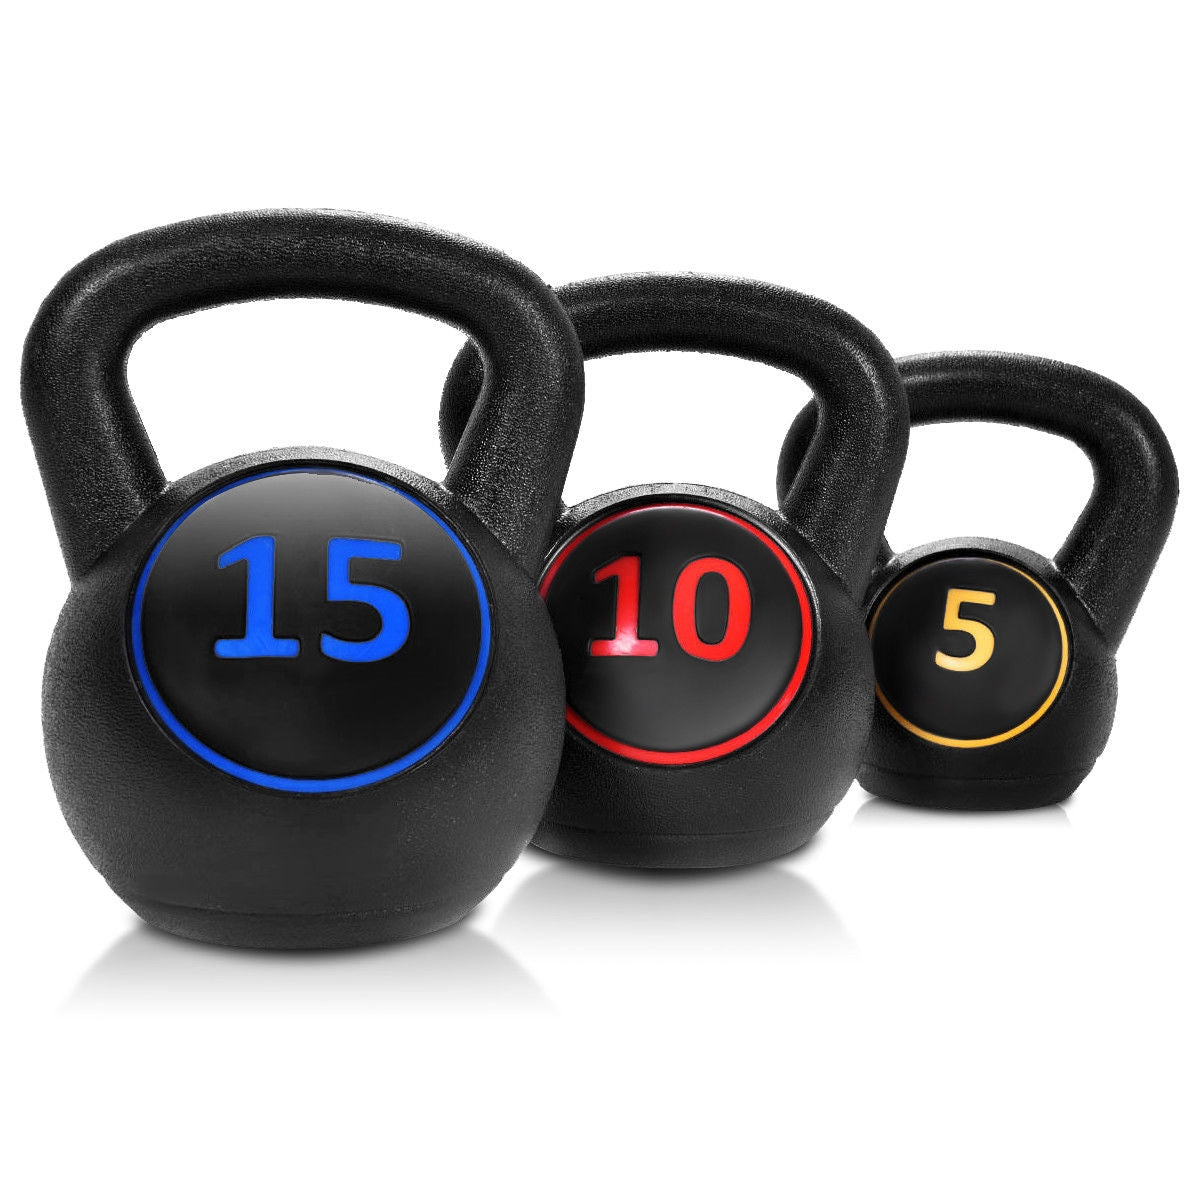 Kettlebell Weights Set Brand New High Quality Kettlebell Set For Home Gym Workout